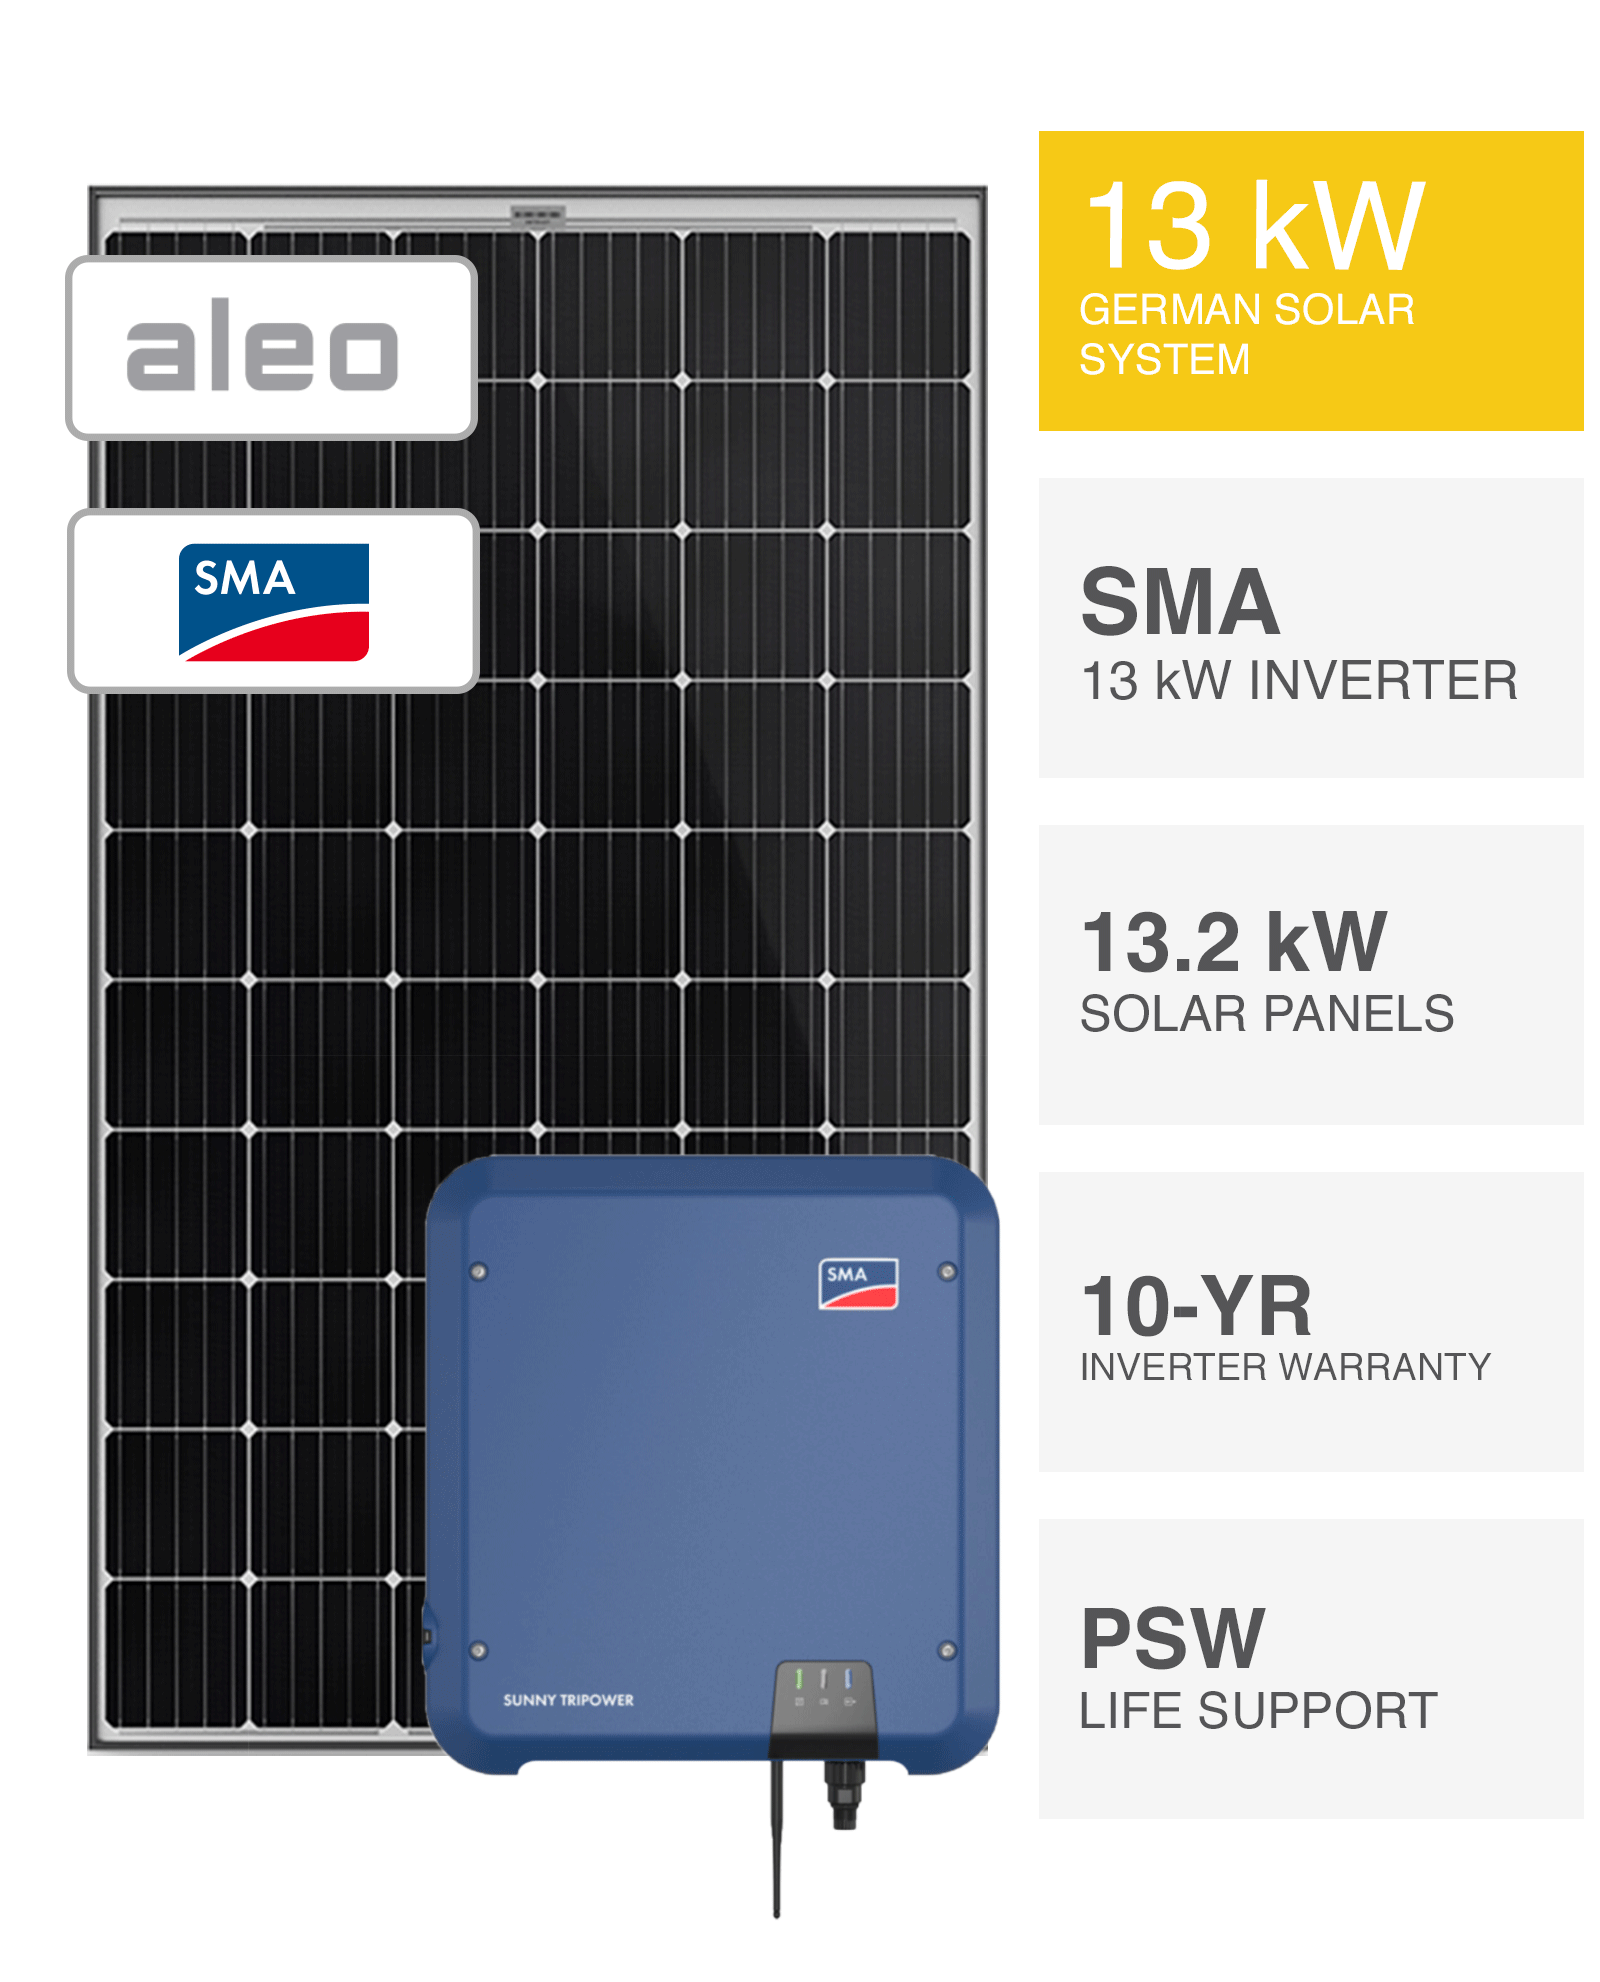 German 13kw Solar System Save More Installed Prices